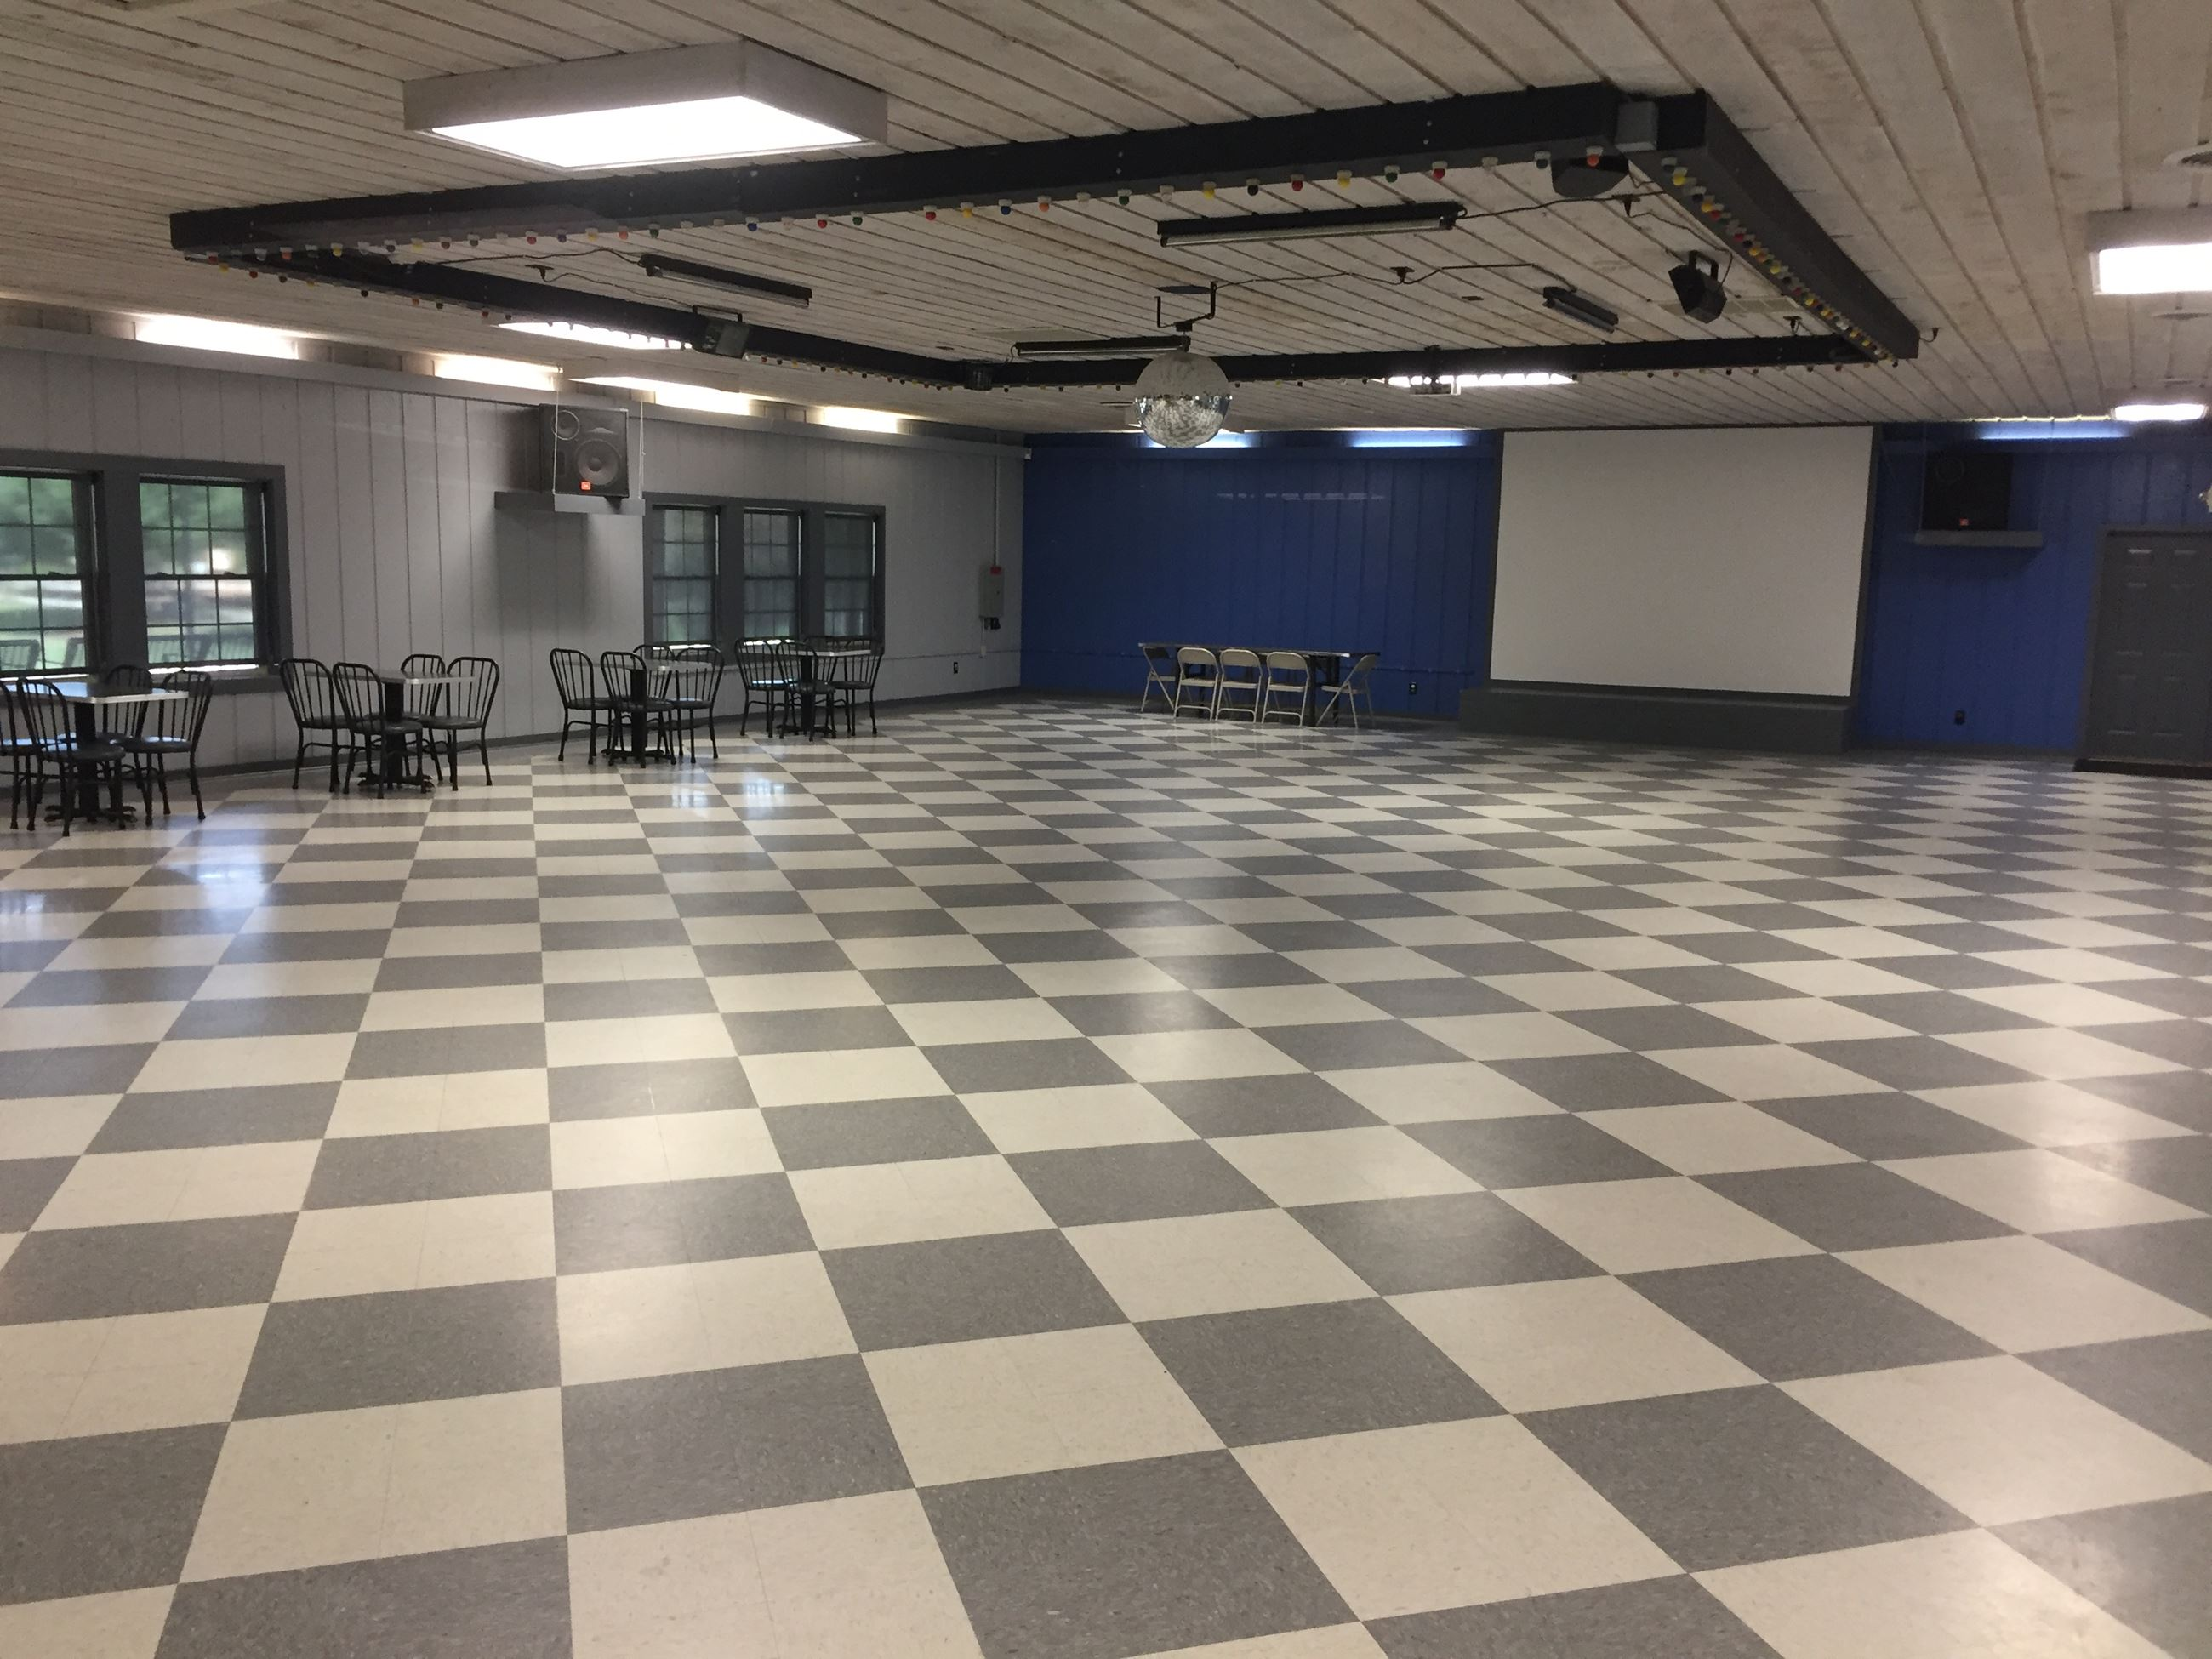 Dance Floor from entrance